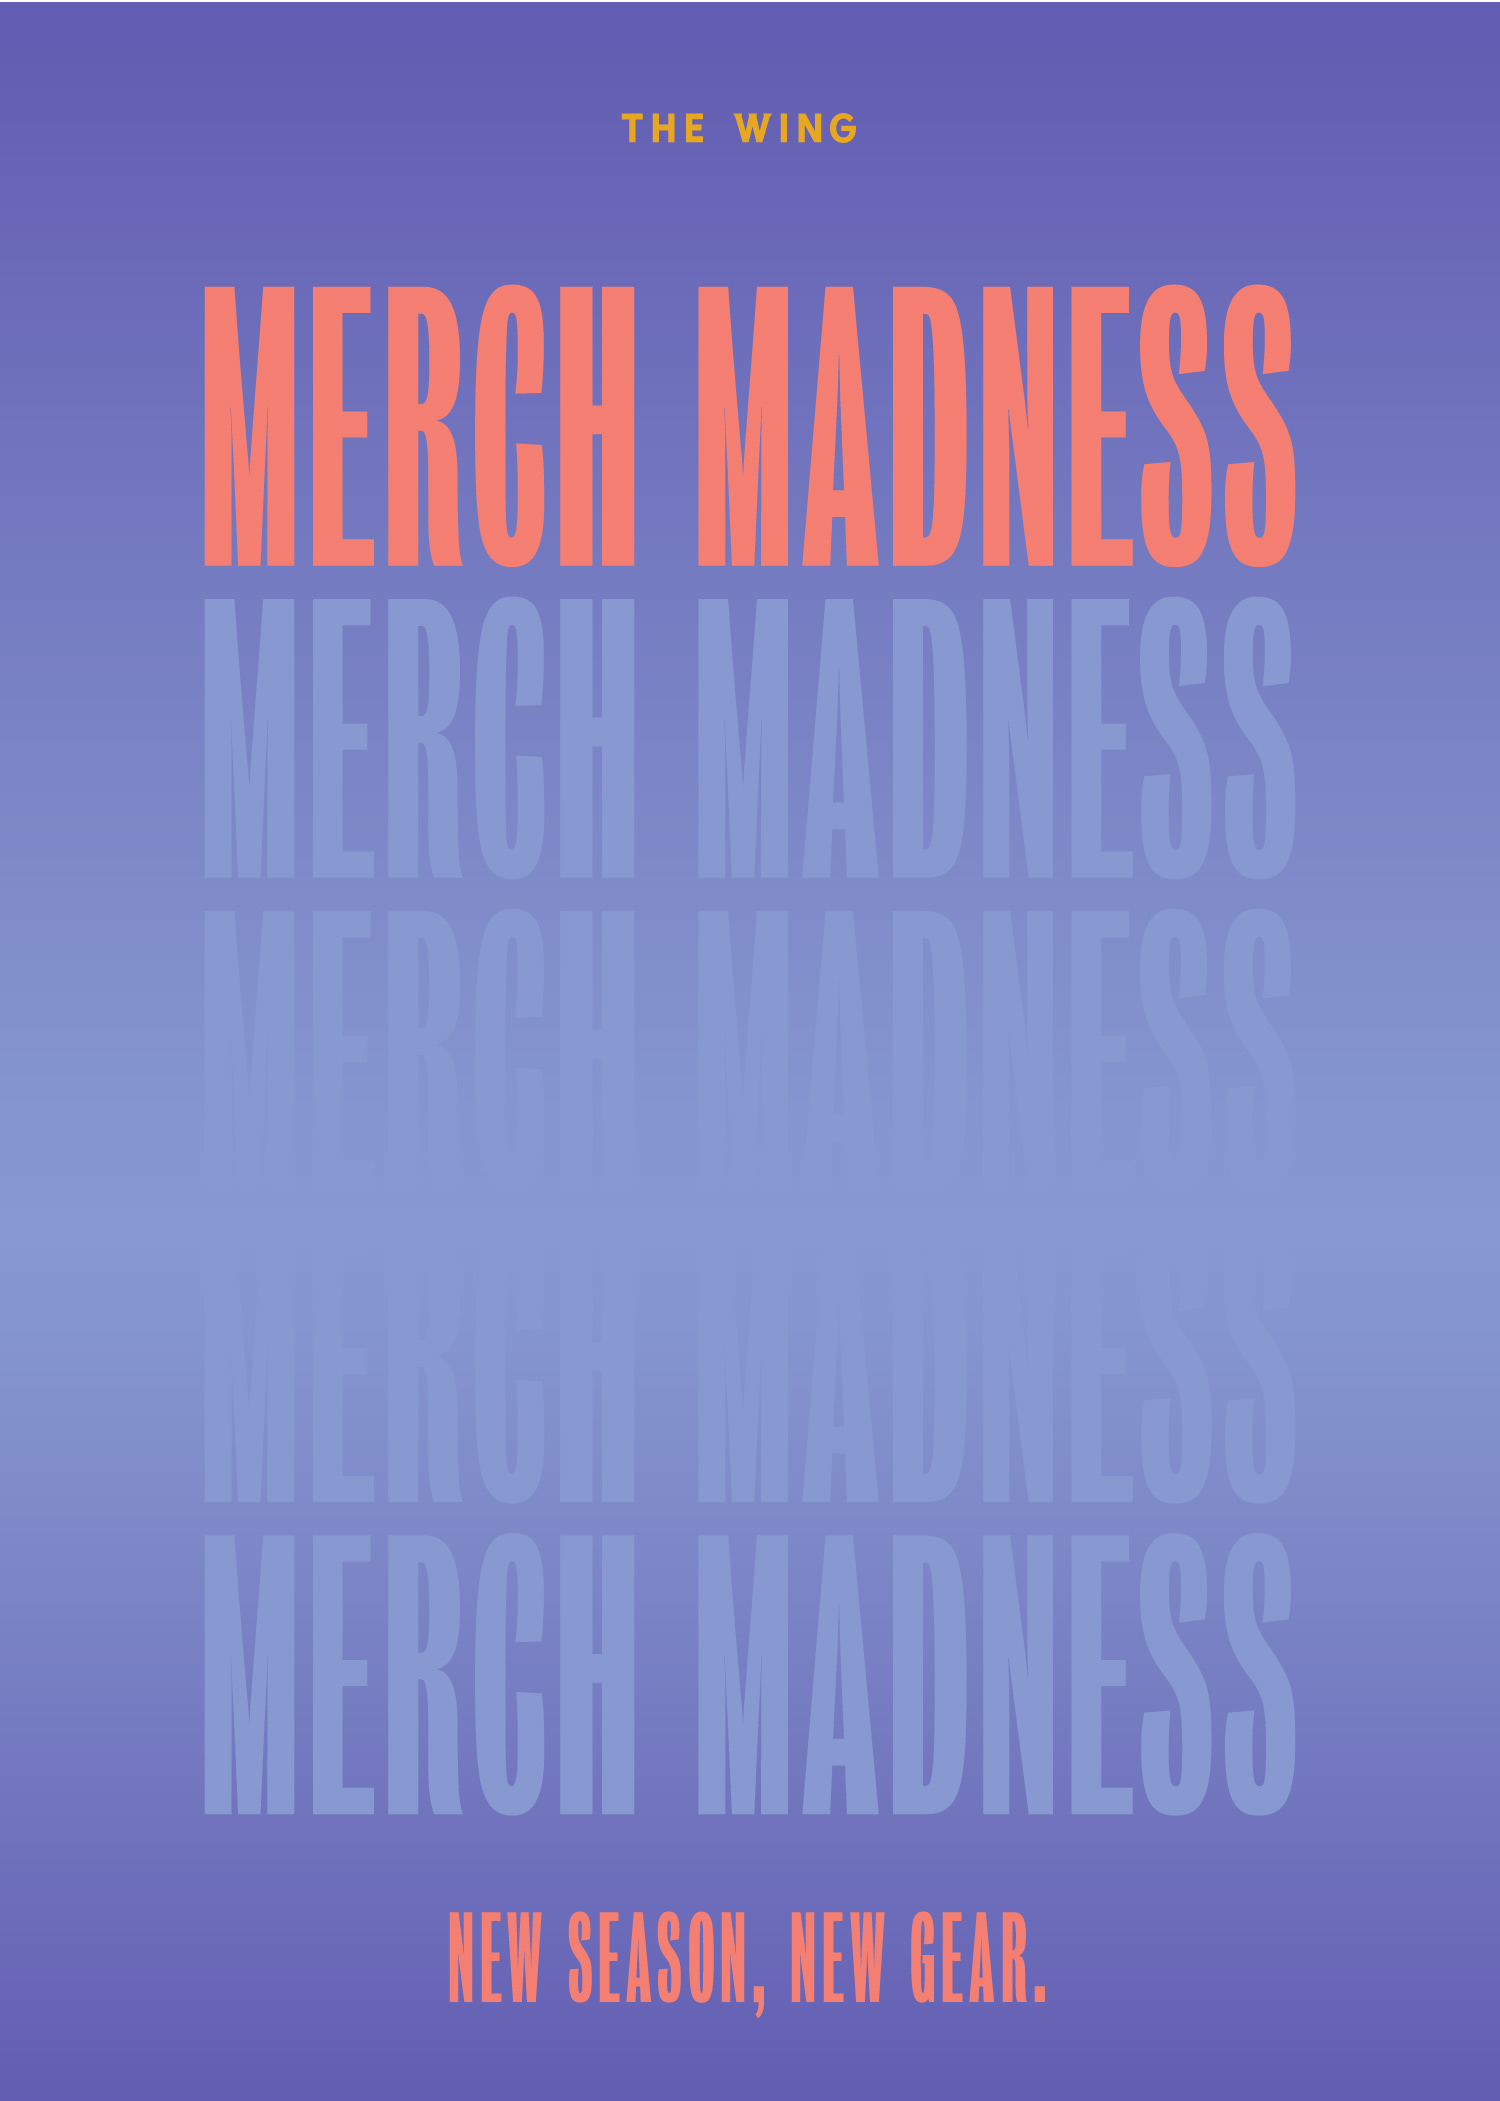 MERCH MADNESS at The Wing